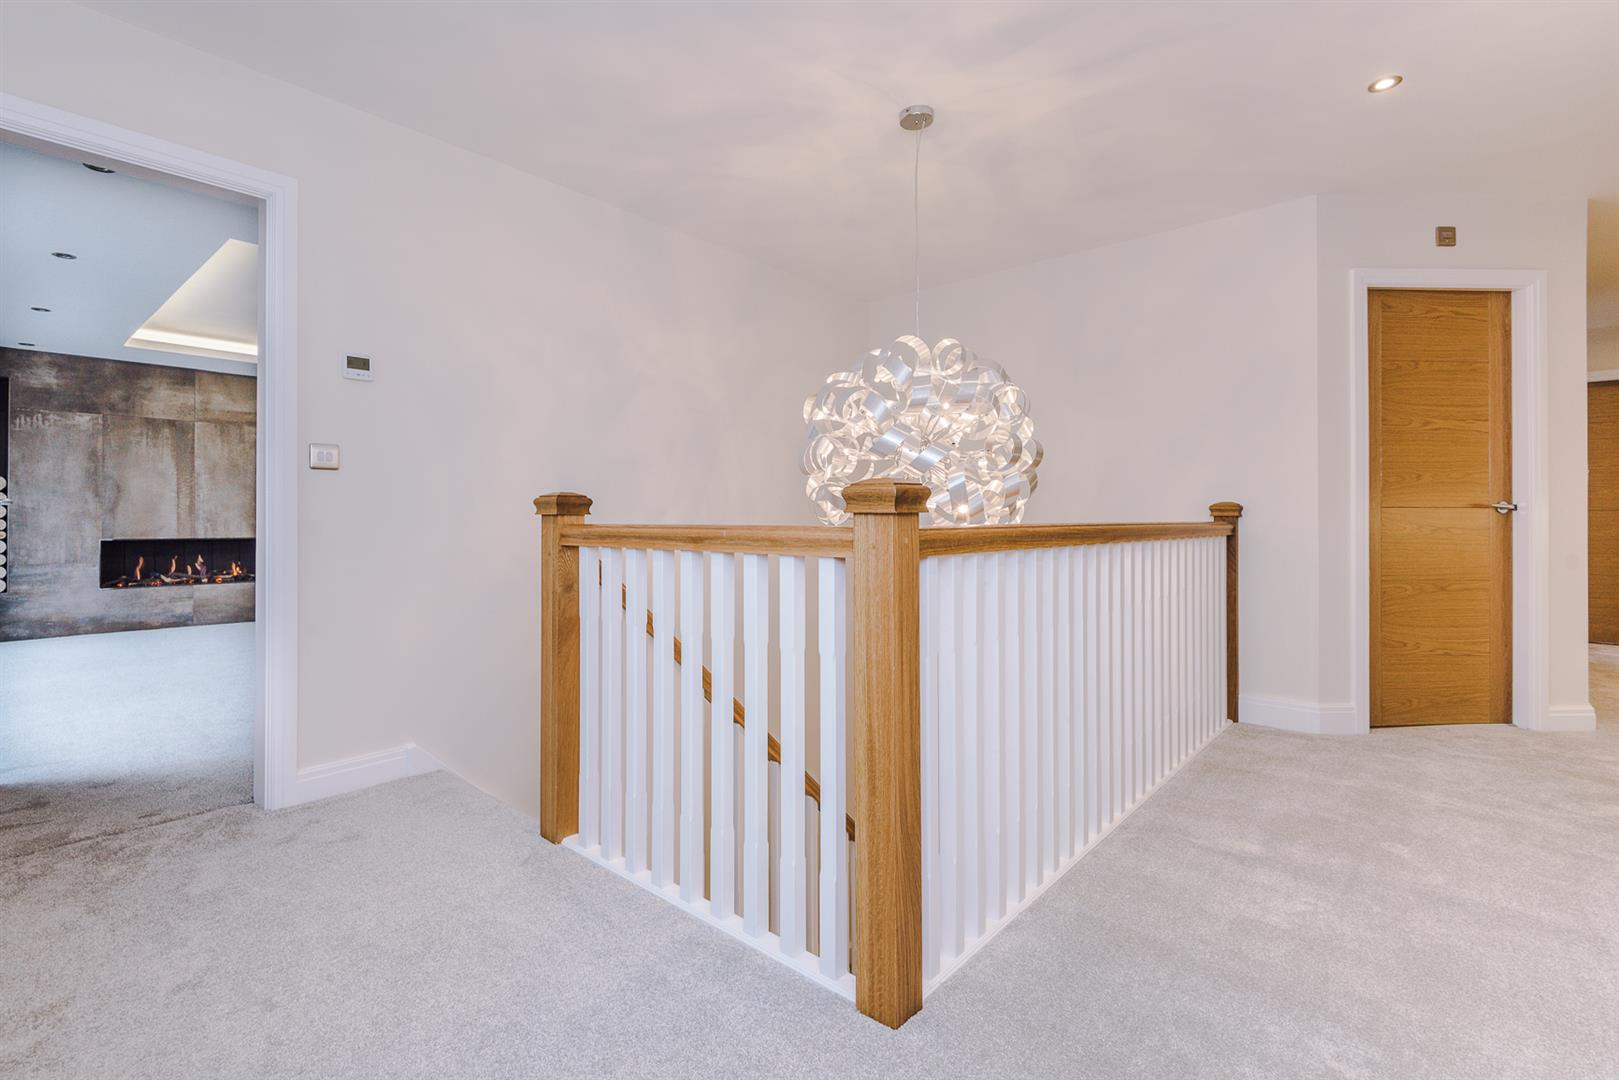 5 Bedroom House For Sale Image 11